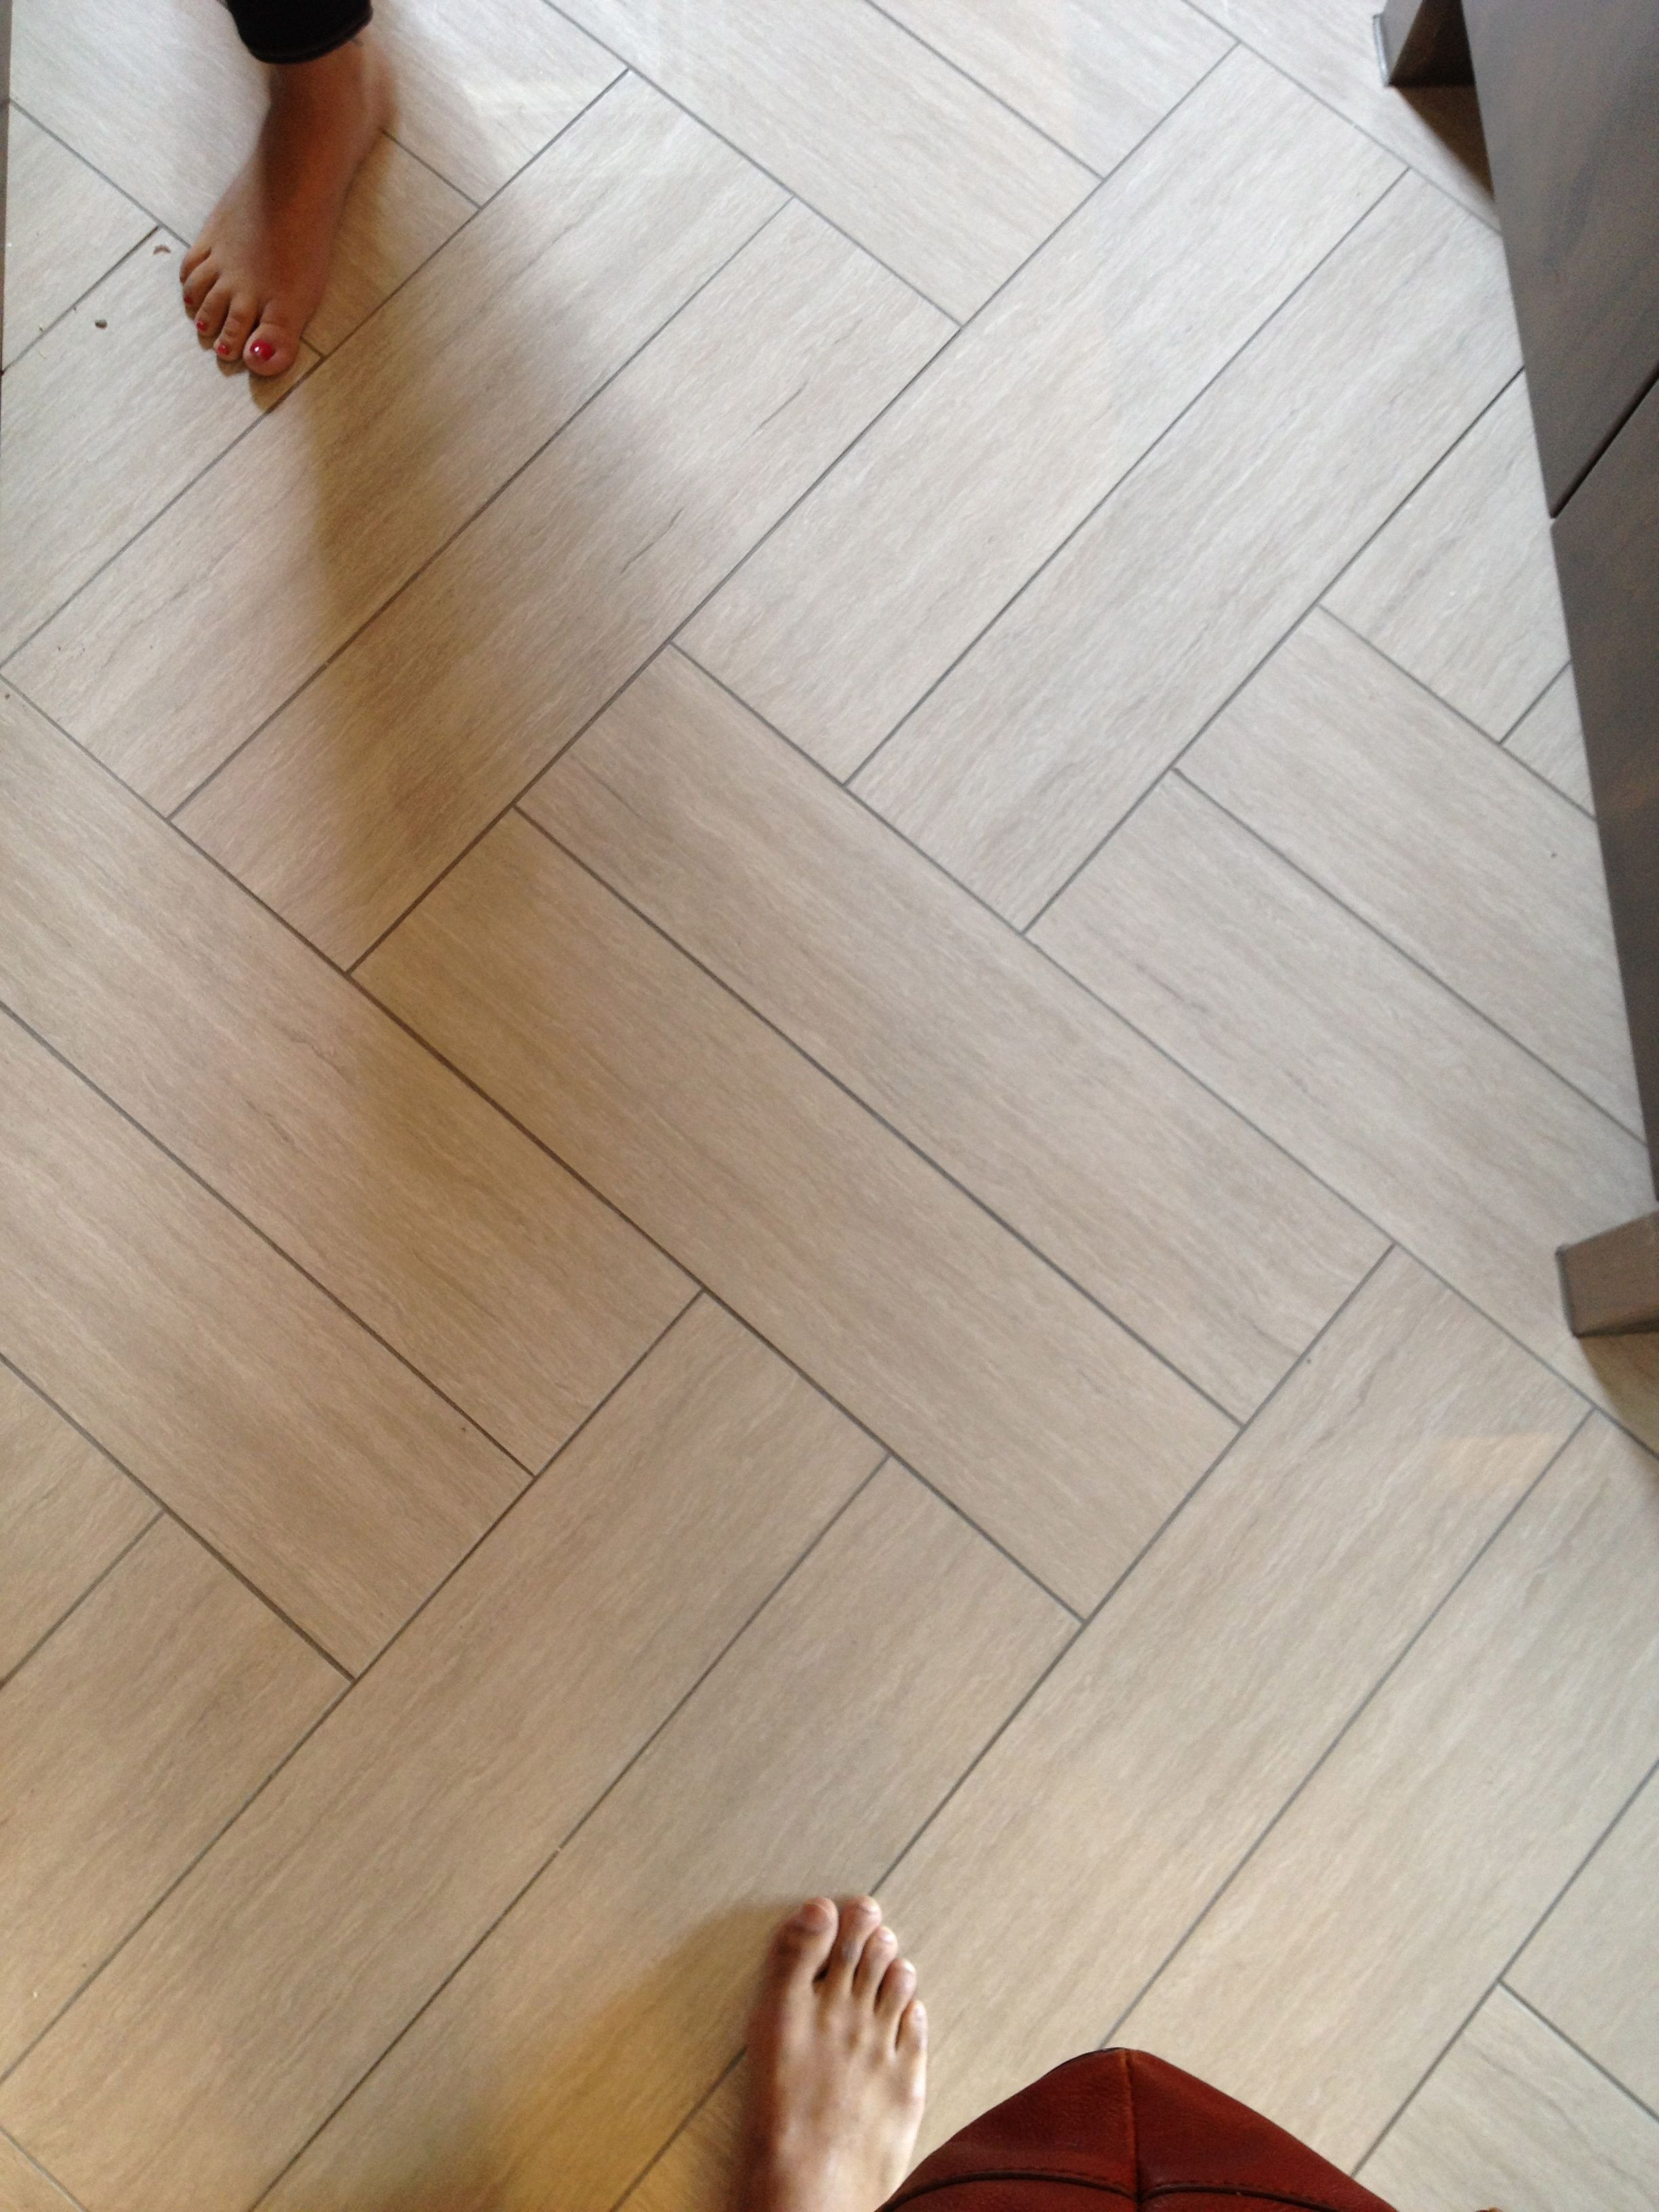 wood floor tile pattern. Recommended floor pattern for bathroom excellent example of inexpensive  materials made to looks